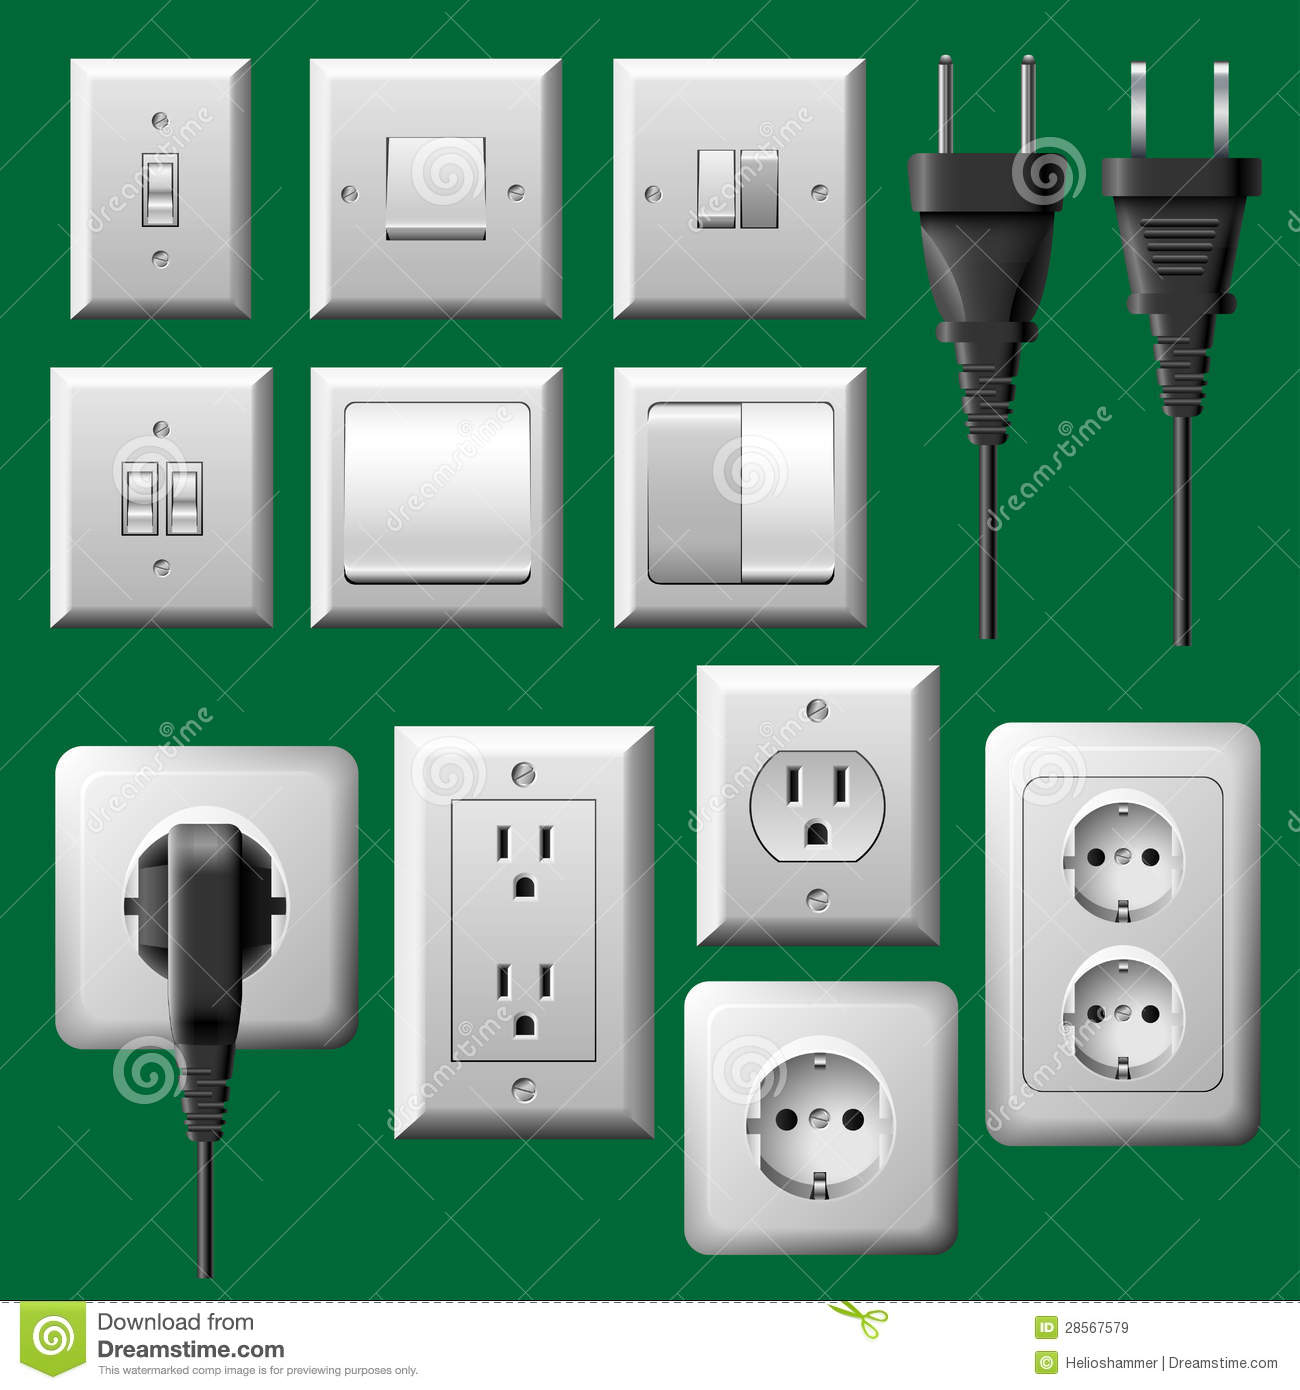 Power Outlet, Light Switch And Electrical Plug Set Stock Vector ...